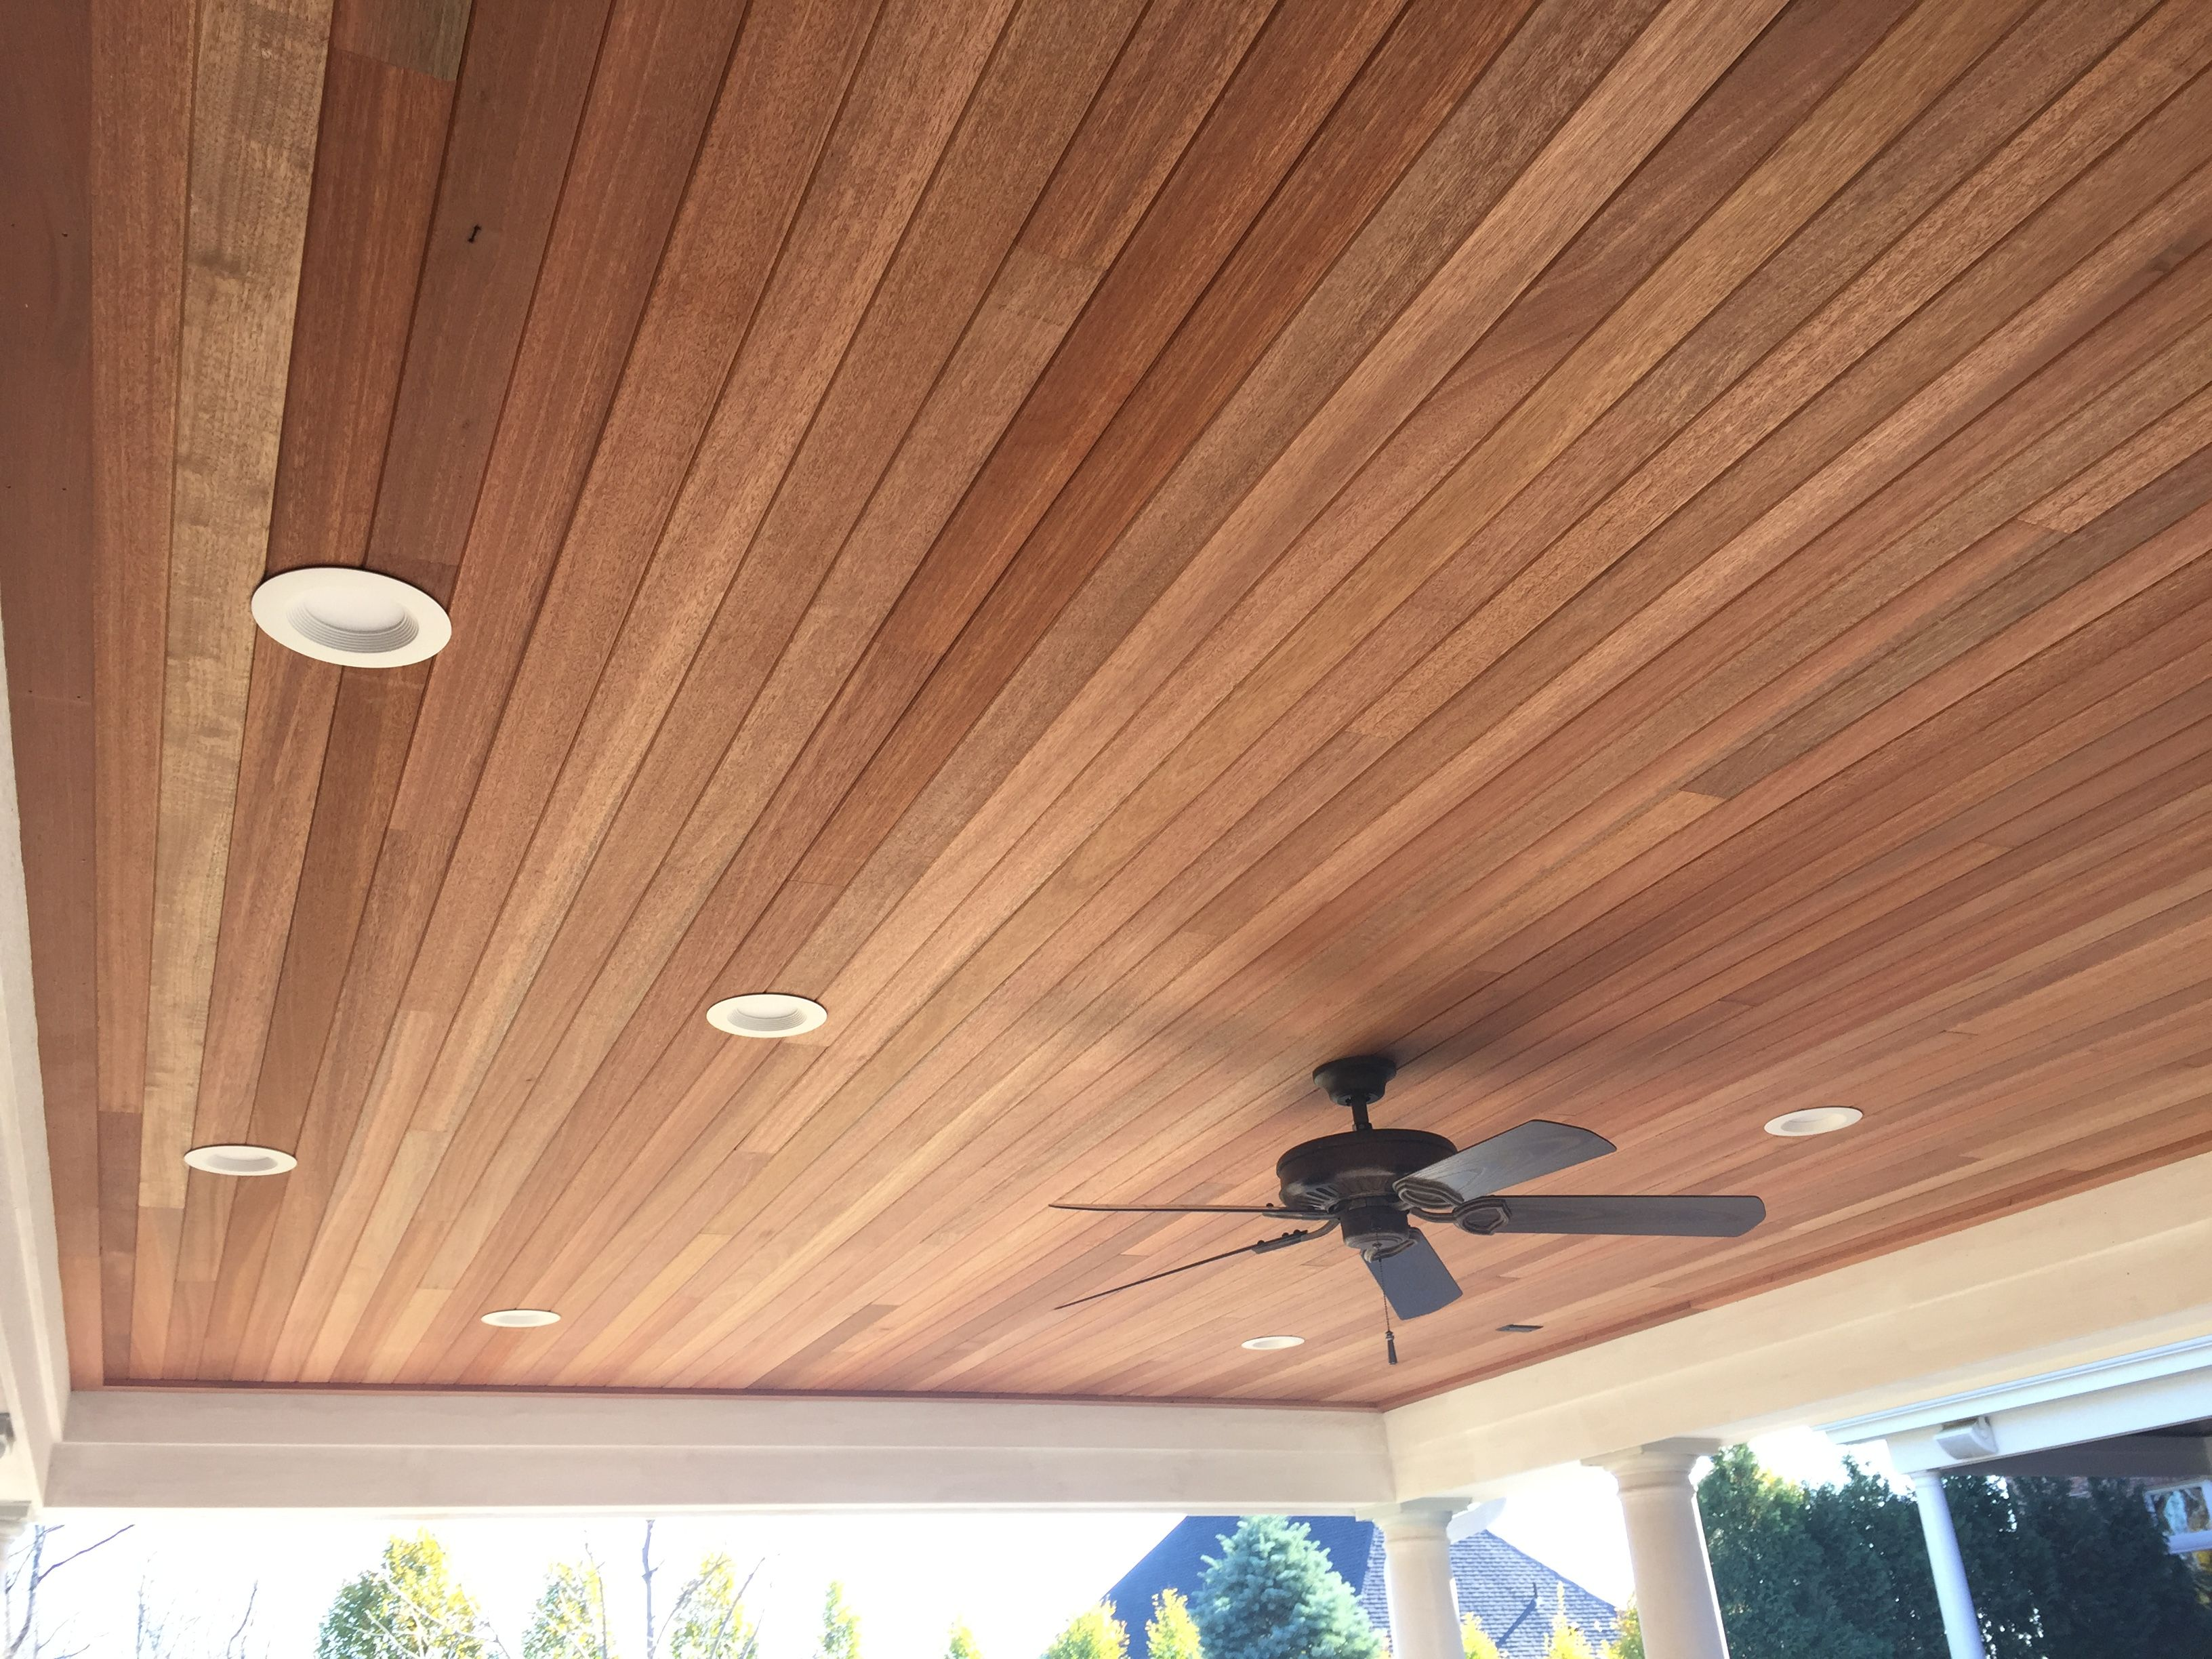 Gorgeous mahogany tongue and groove ceiling for an outdoor